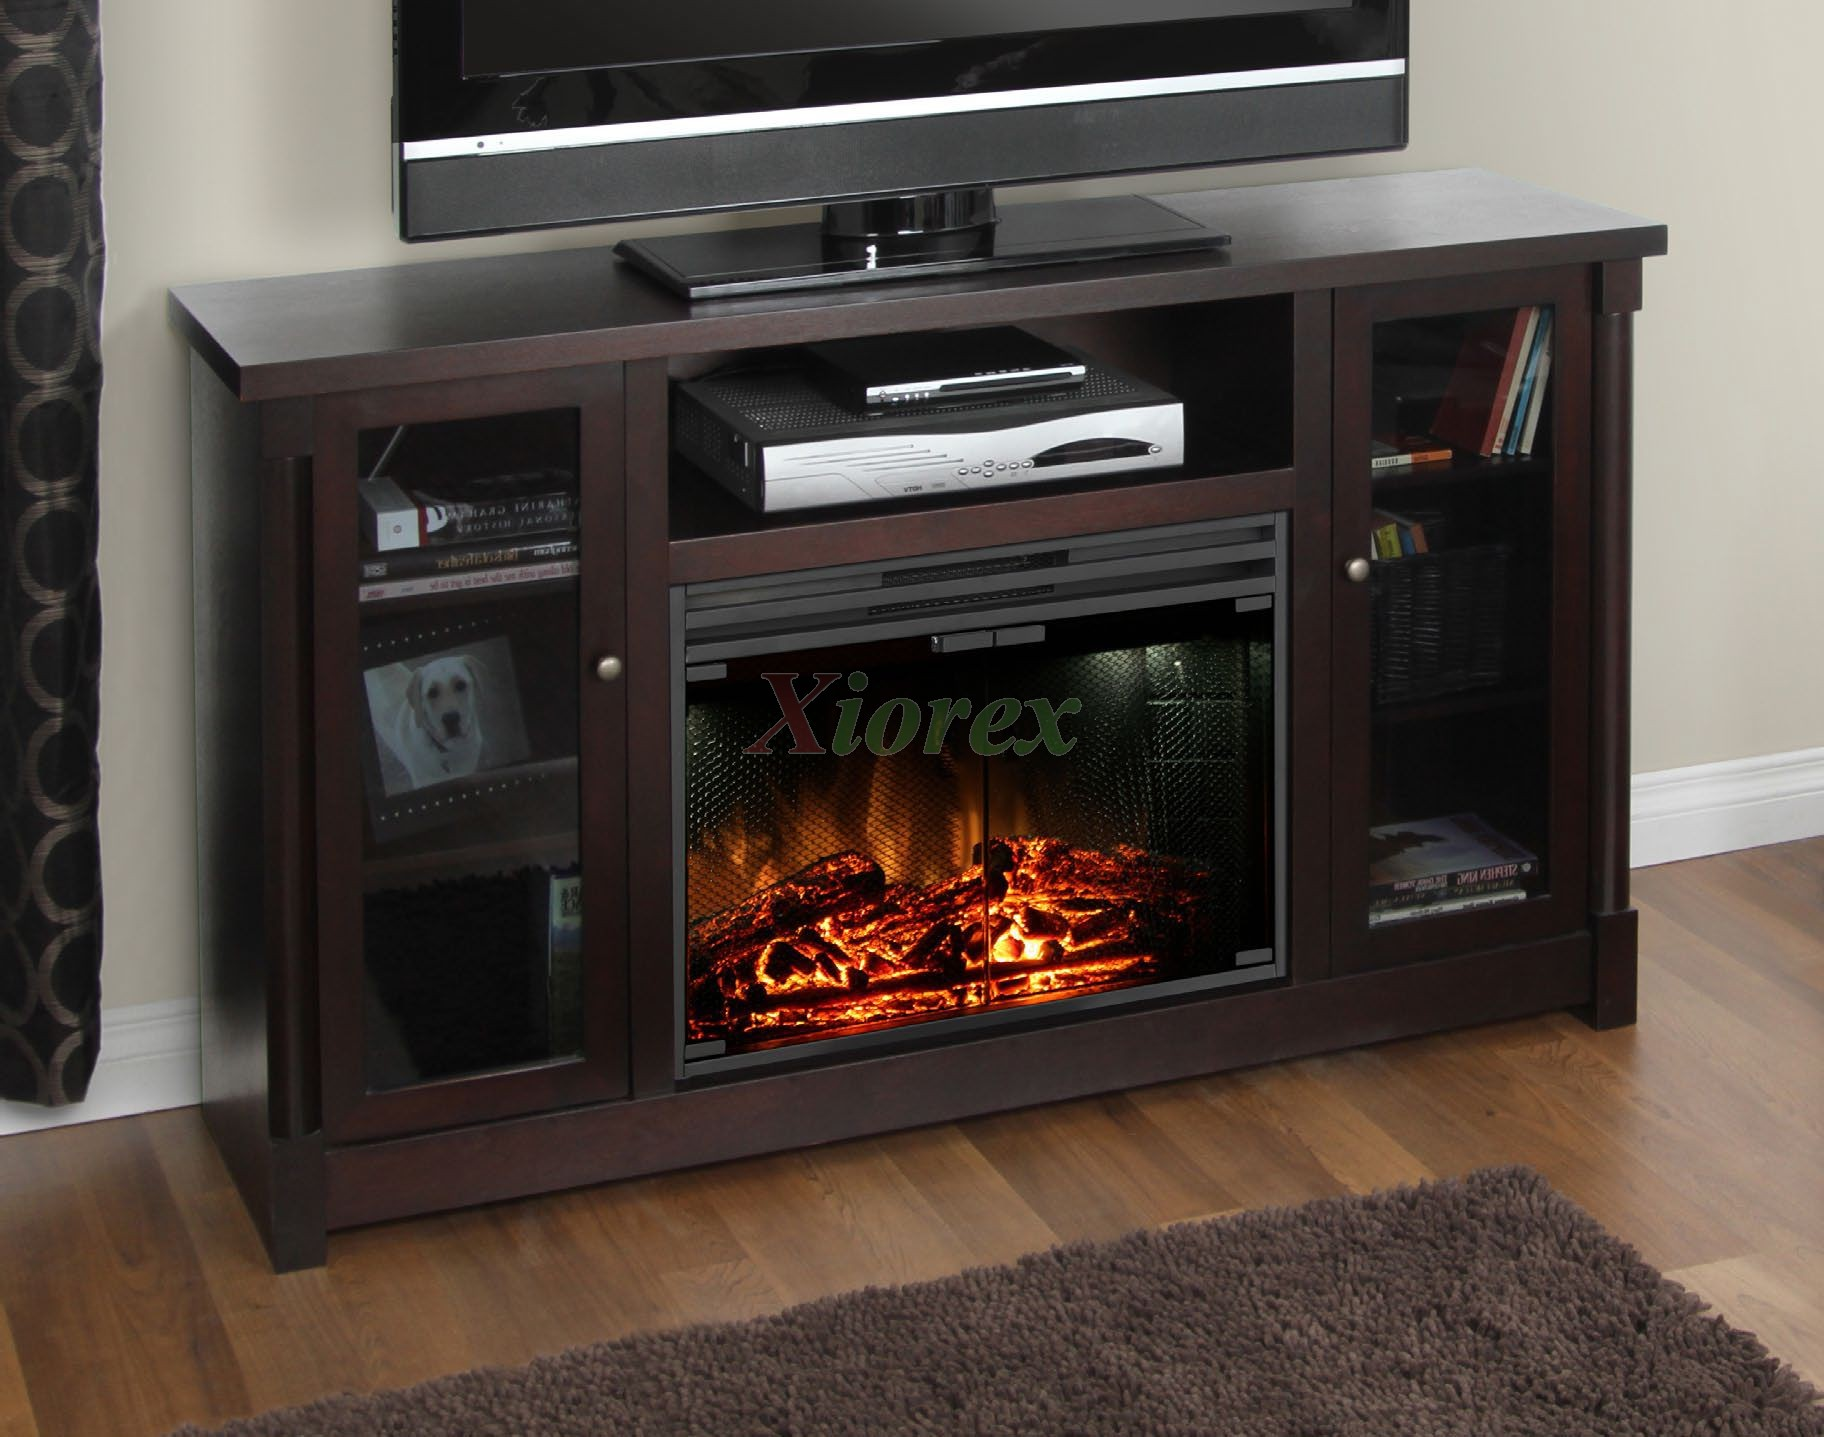 Muskoka Coventry Tv Stand Fireplace In Espresso Xiorex